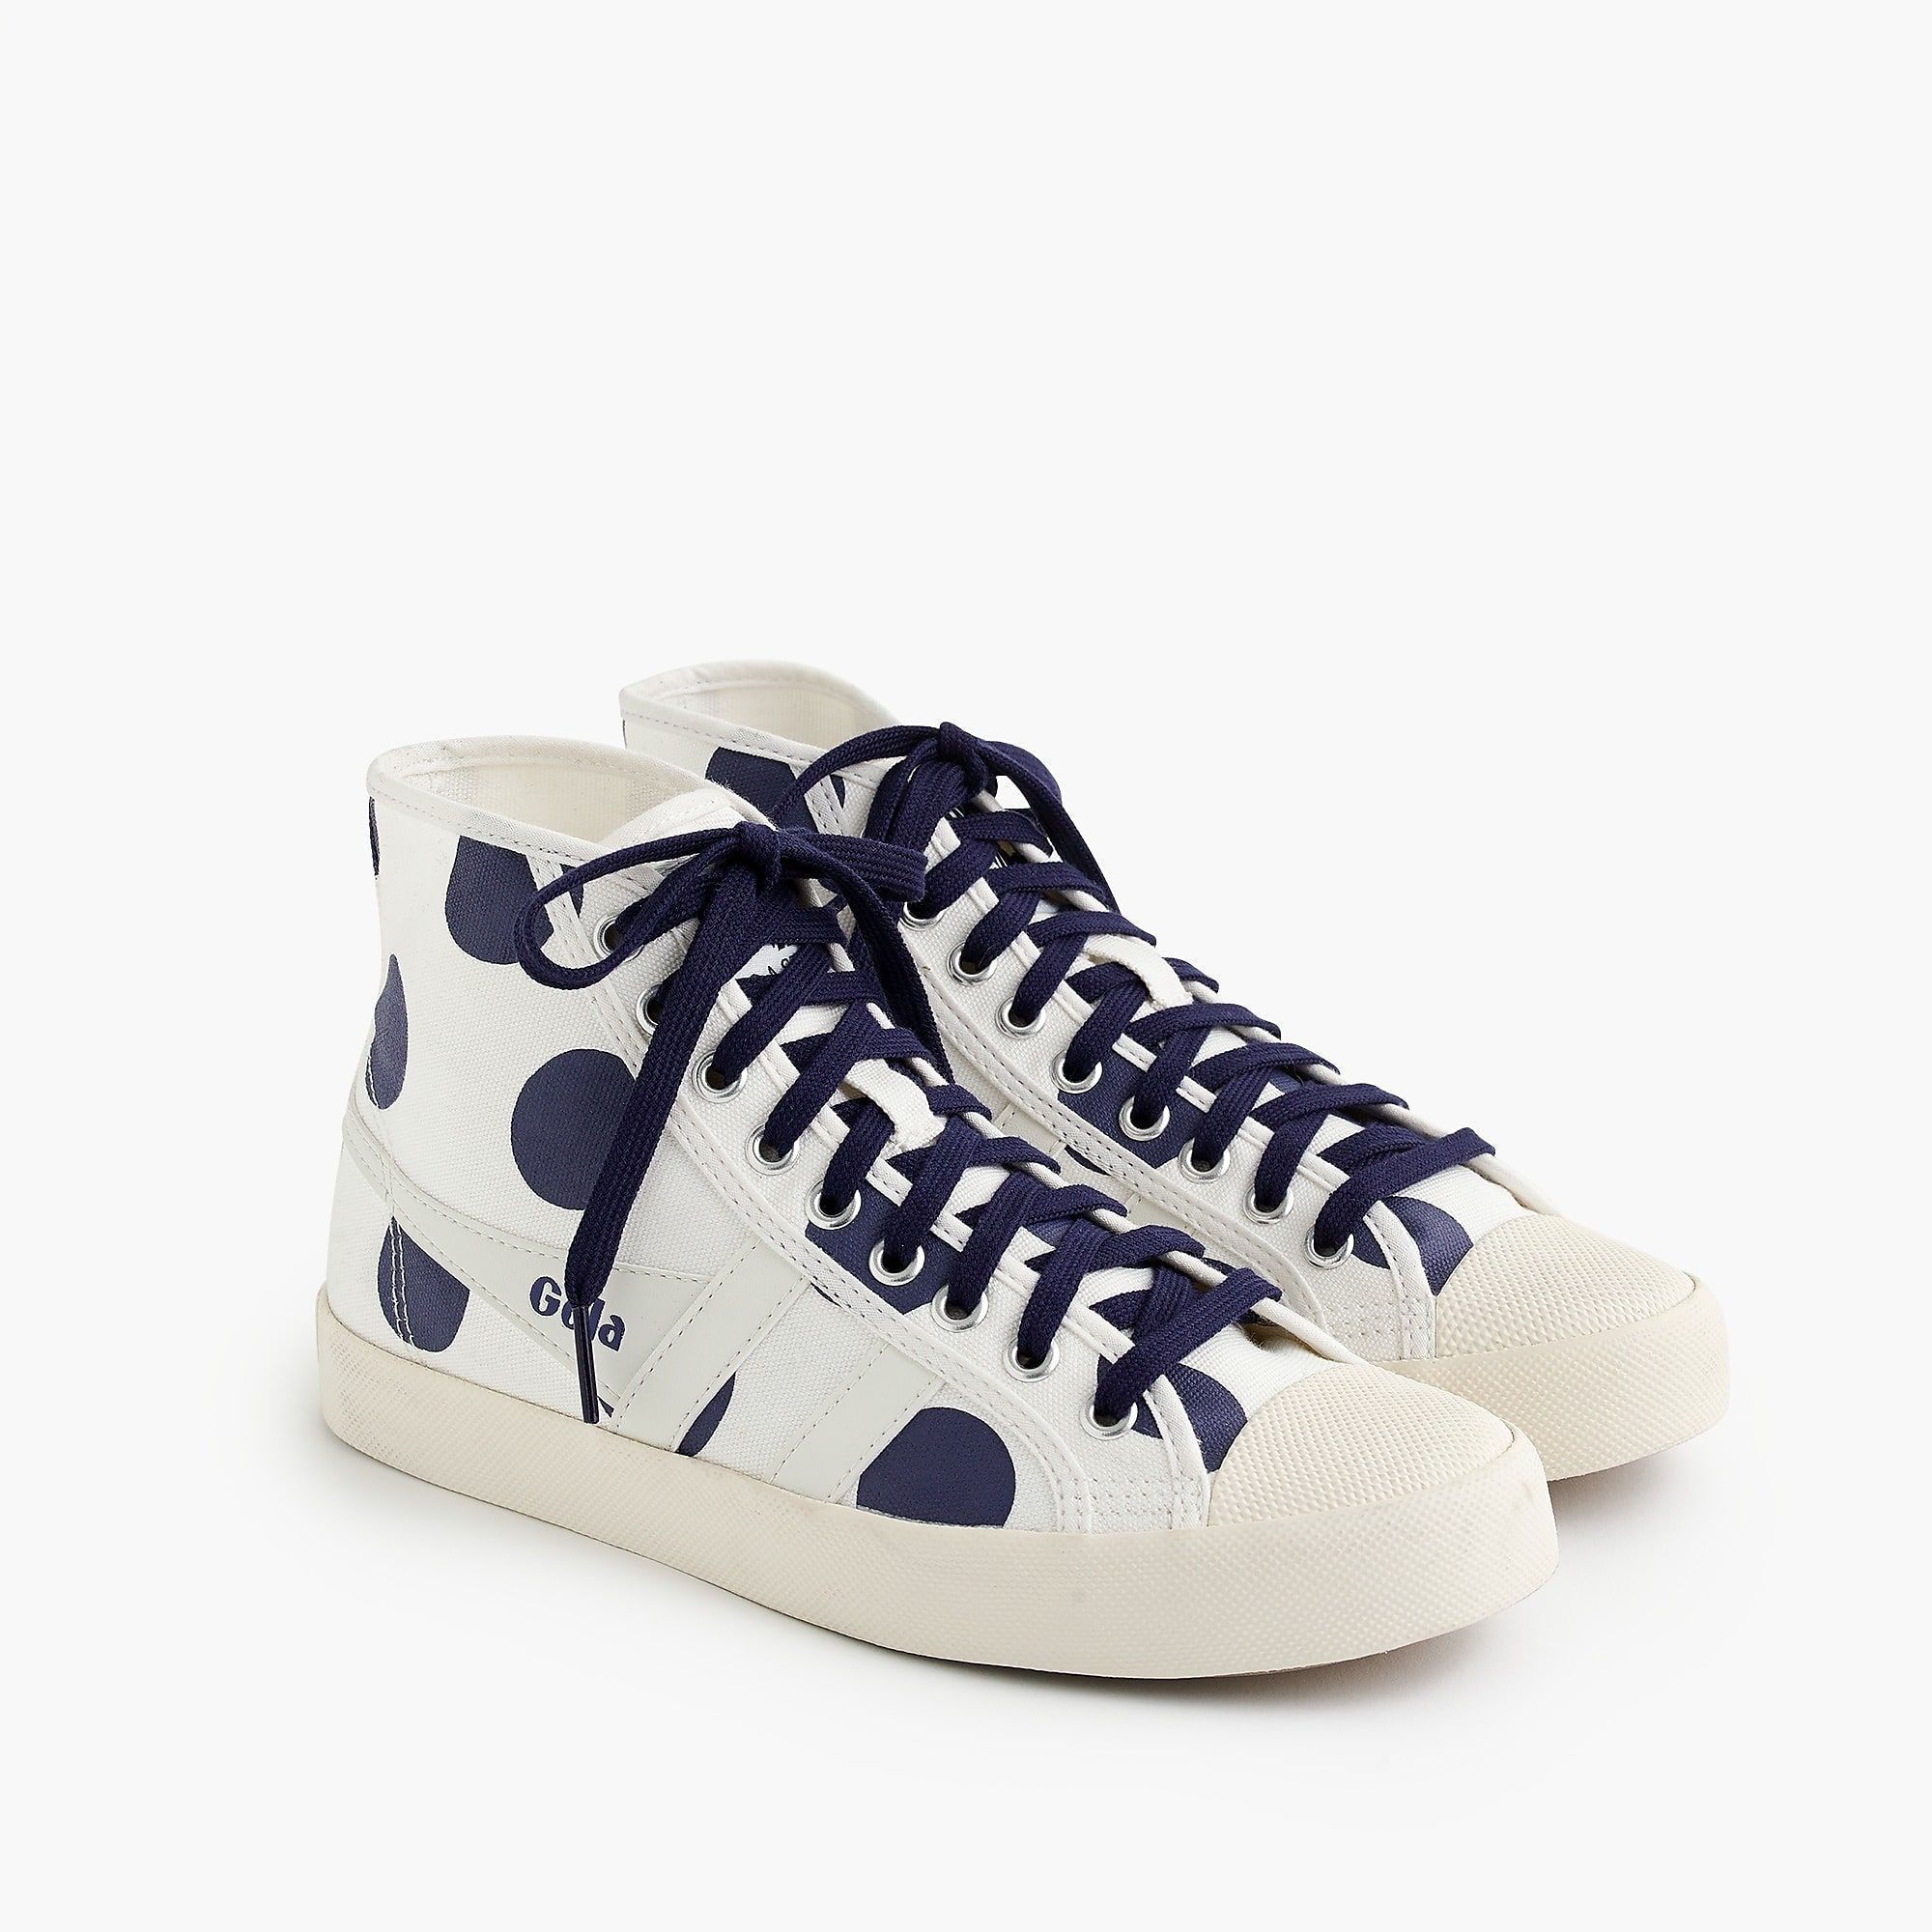 cc3bf0ecb491 Gola for J.Crew Coaster high-top sneaker in polka dot     shoes ...